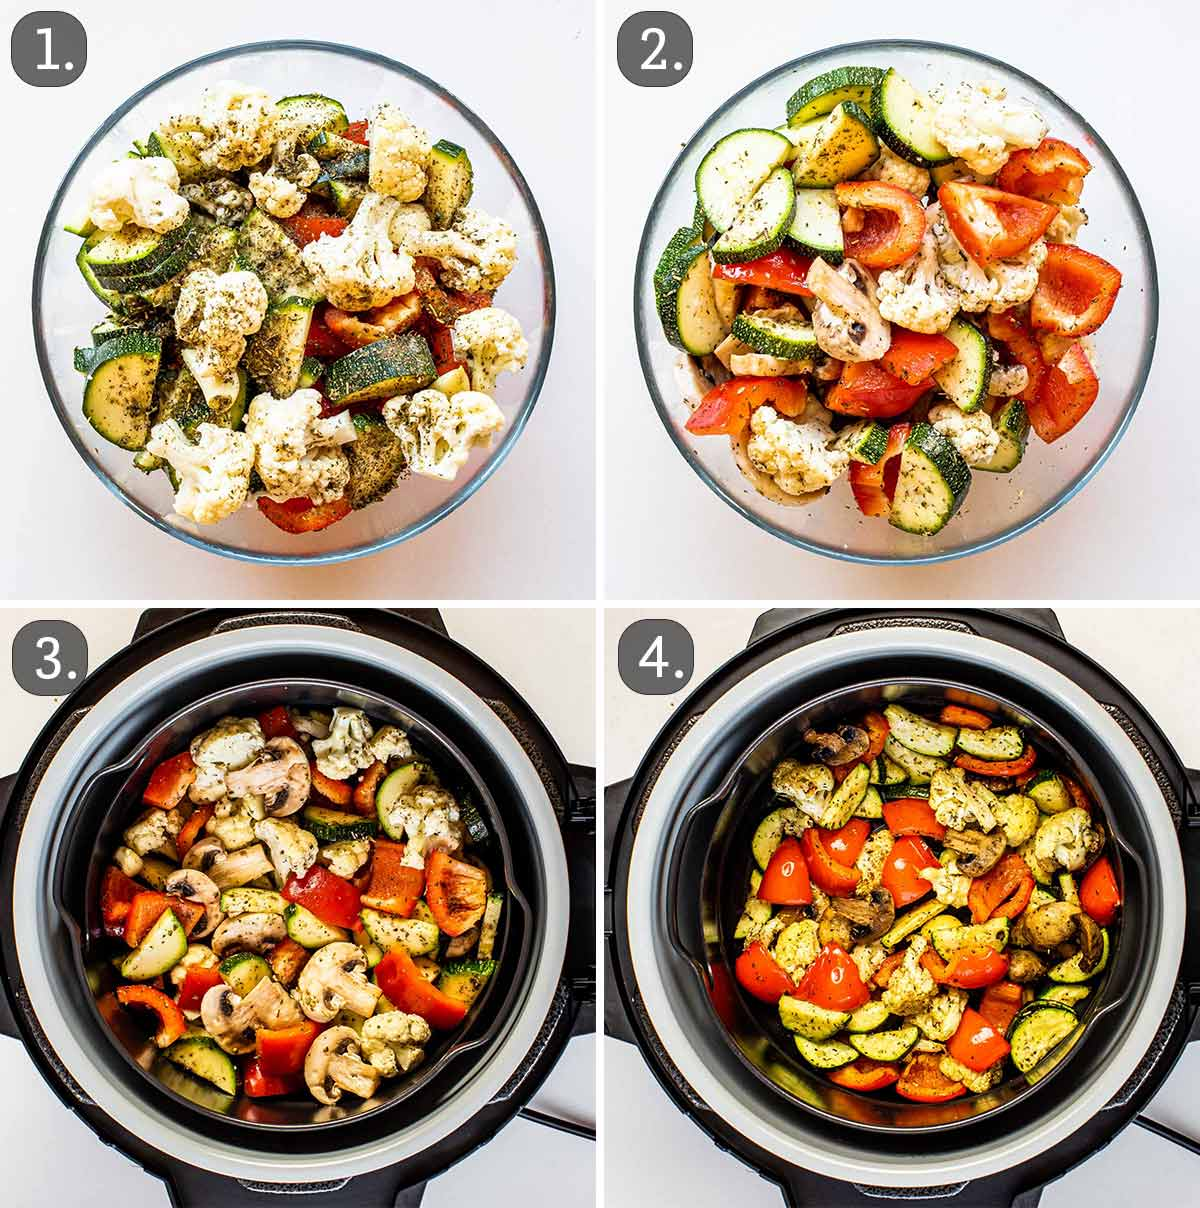 process shots showing how to make air fryer vegetables.